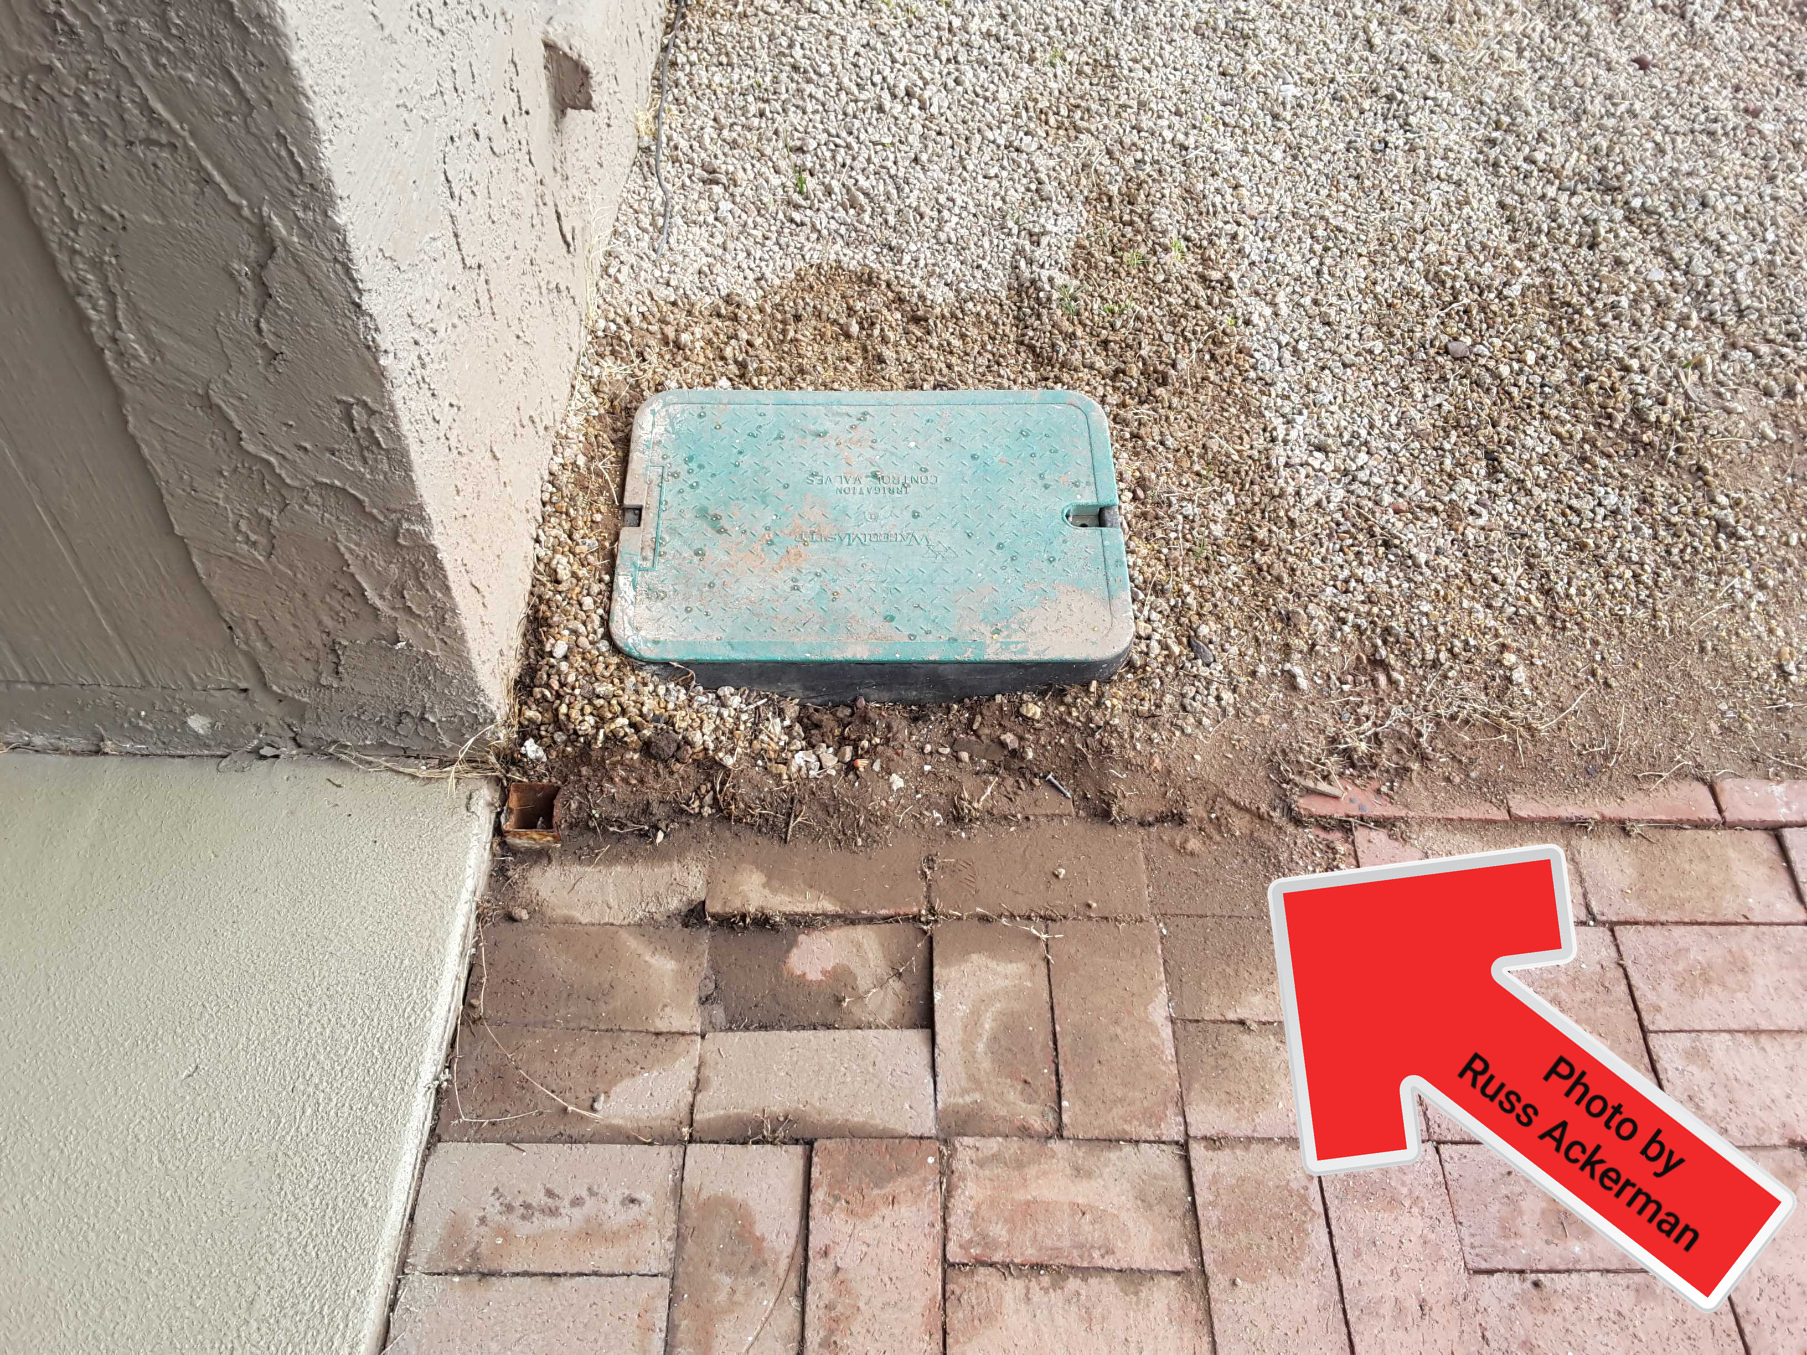 It hasn't rained in a long while and there is evidence of pooling water around a sprinkler valve box. Leaking at the manifold is a certainty.